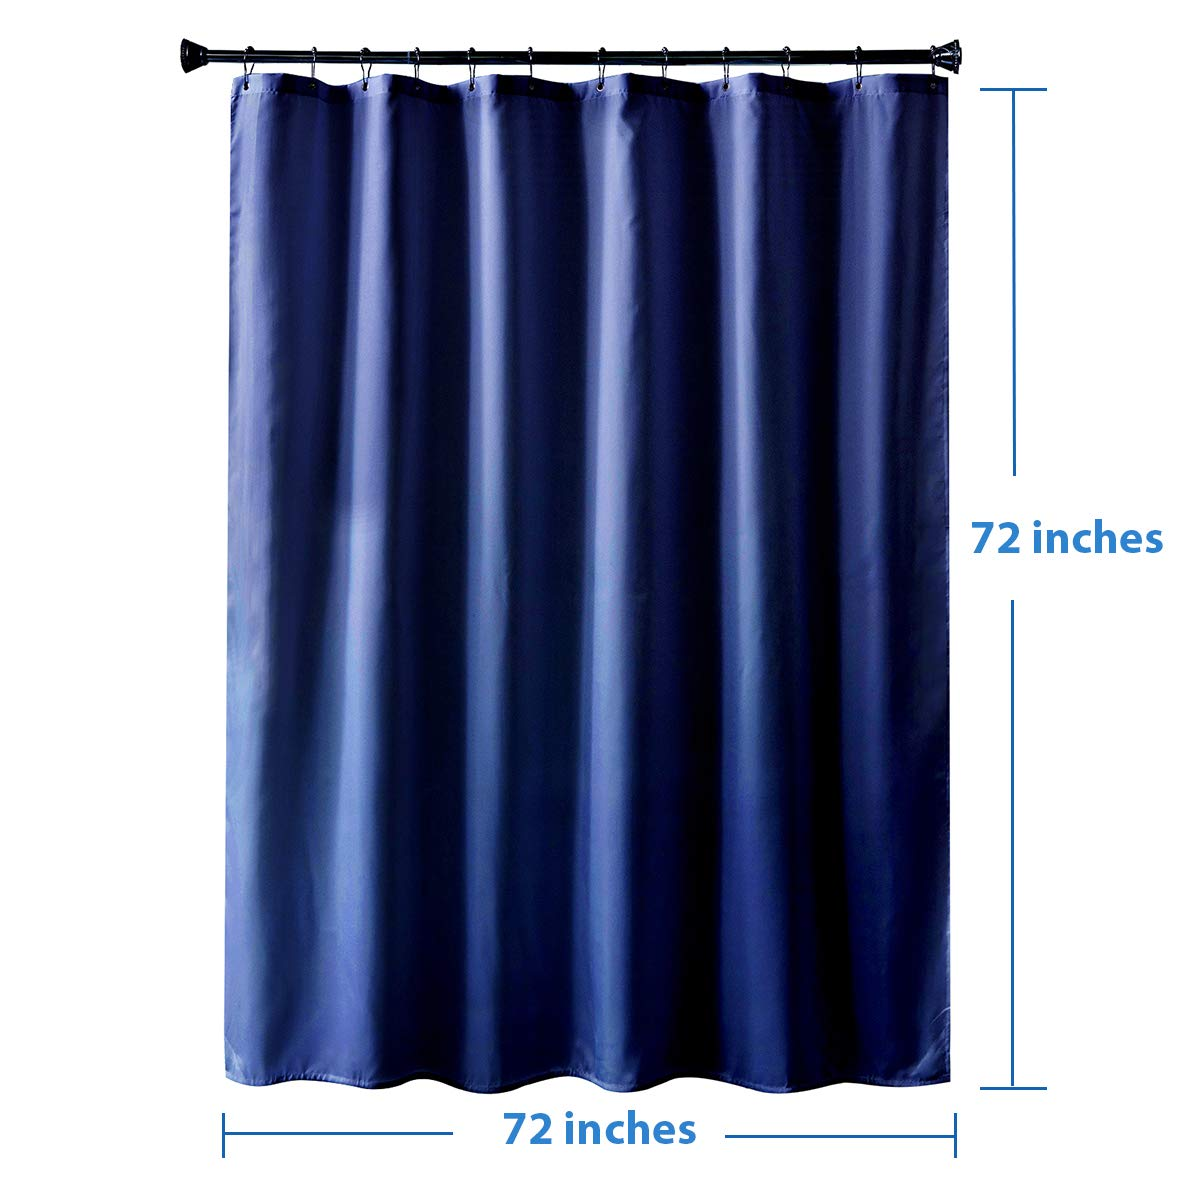 36 x 72 Inches White Polyester Fabric Shower Curtain Liners Bathroom Shower Curtains Water Proof Amazer Fabric Shower Curtain Liner Hotel Quality